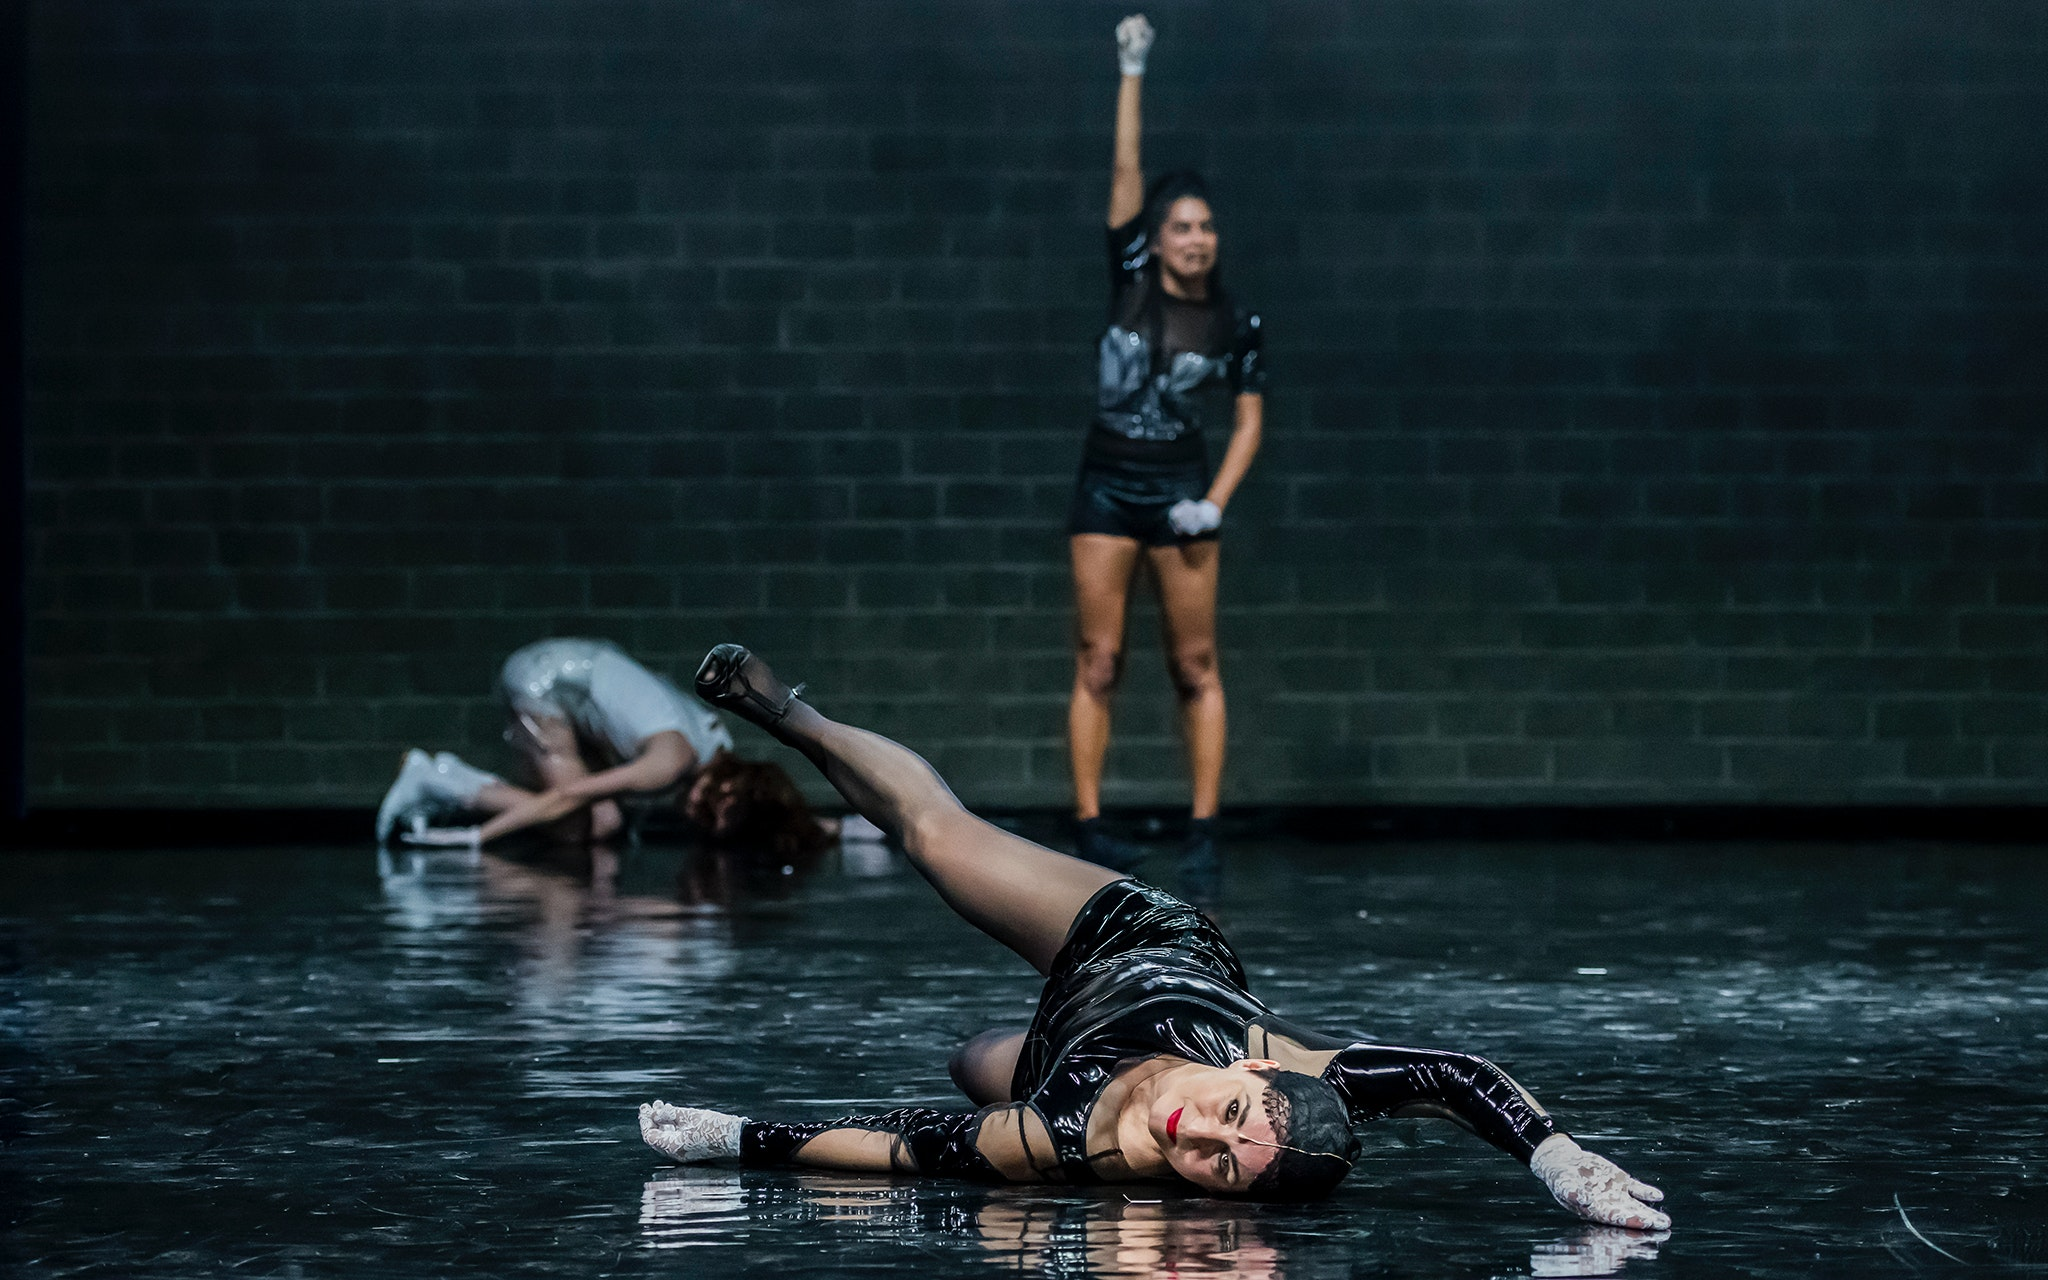 Two dancers on the ground, one standing with arm raised, on a black stage with brick wall background.